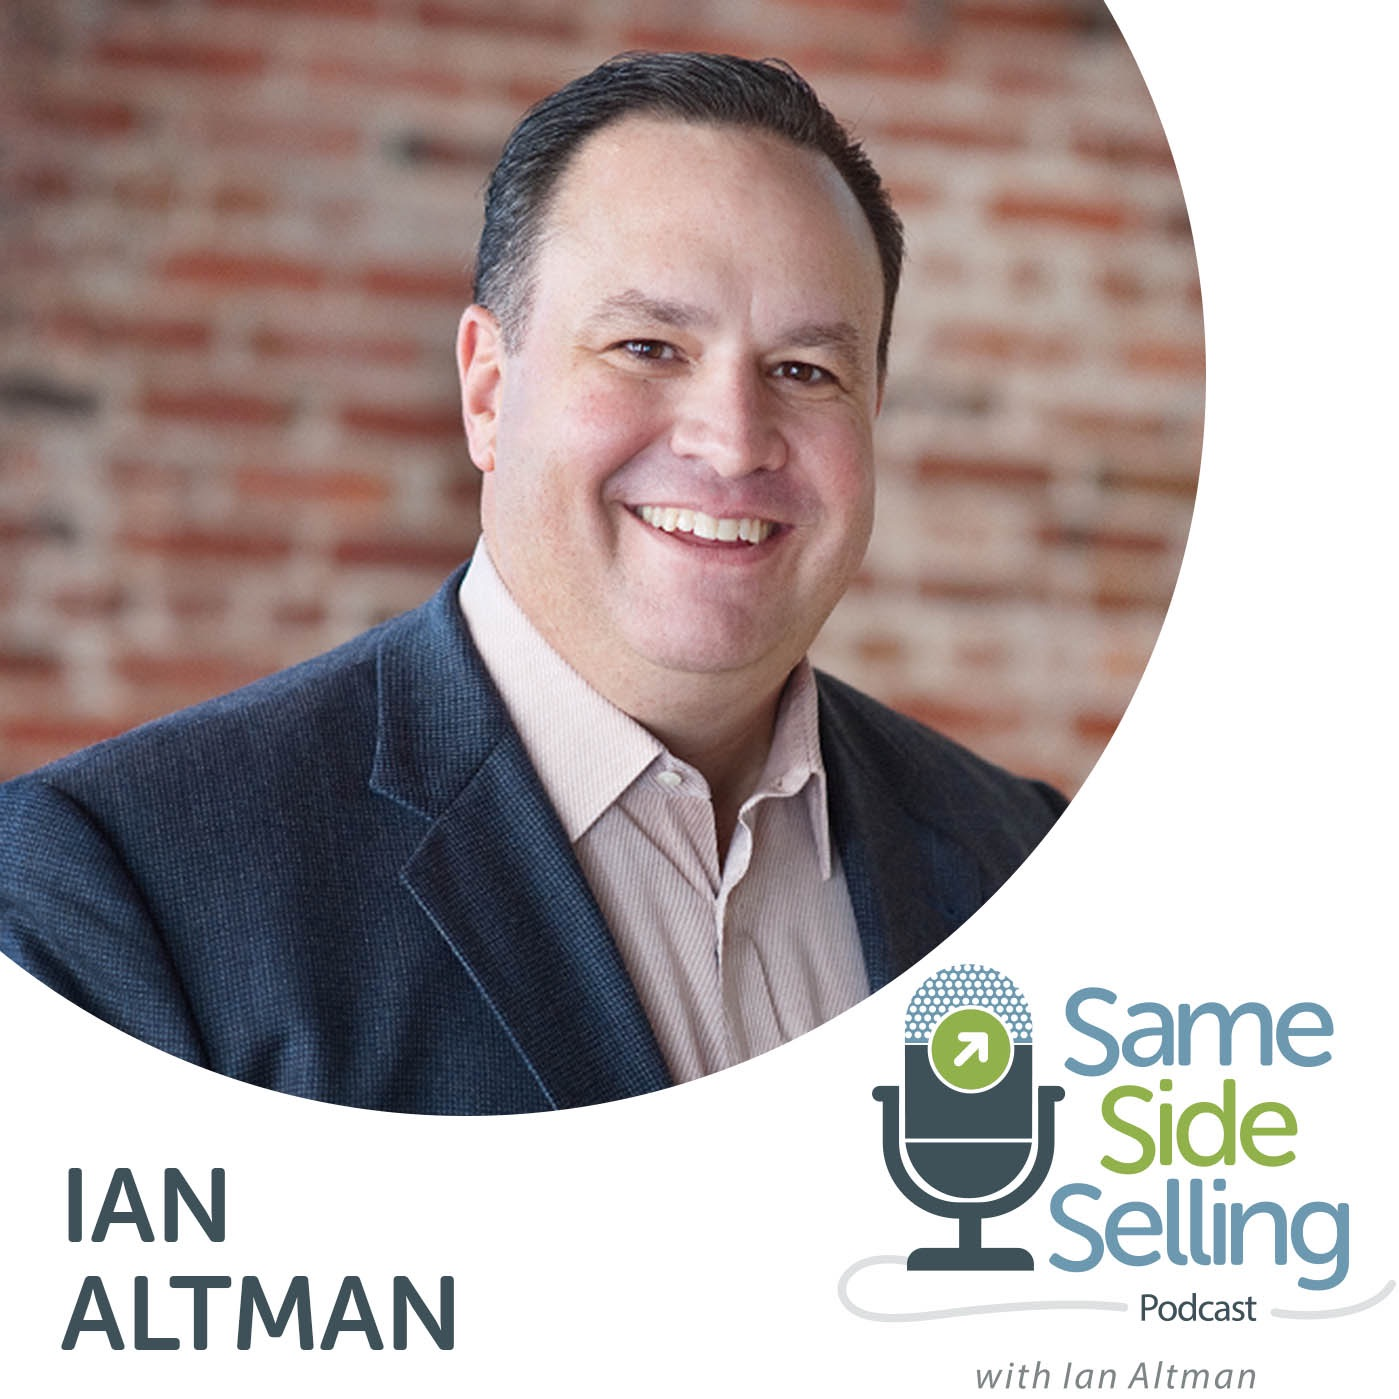 211 | Stop Convincing Your Prospects, Ian Altman